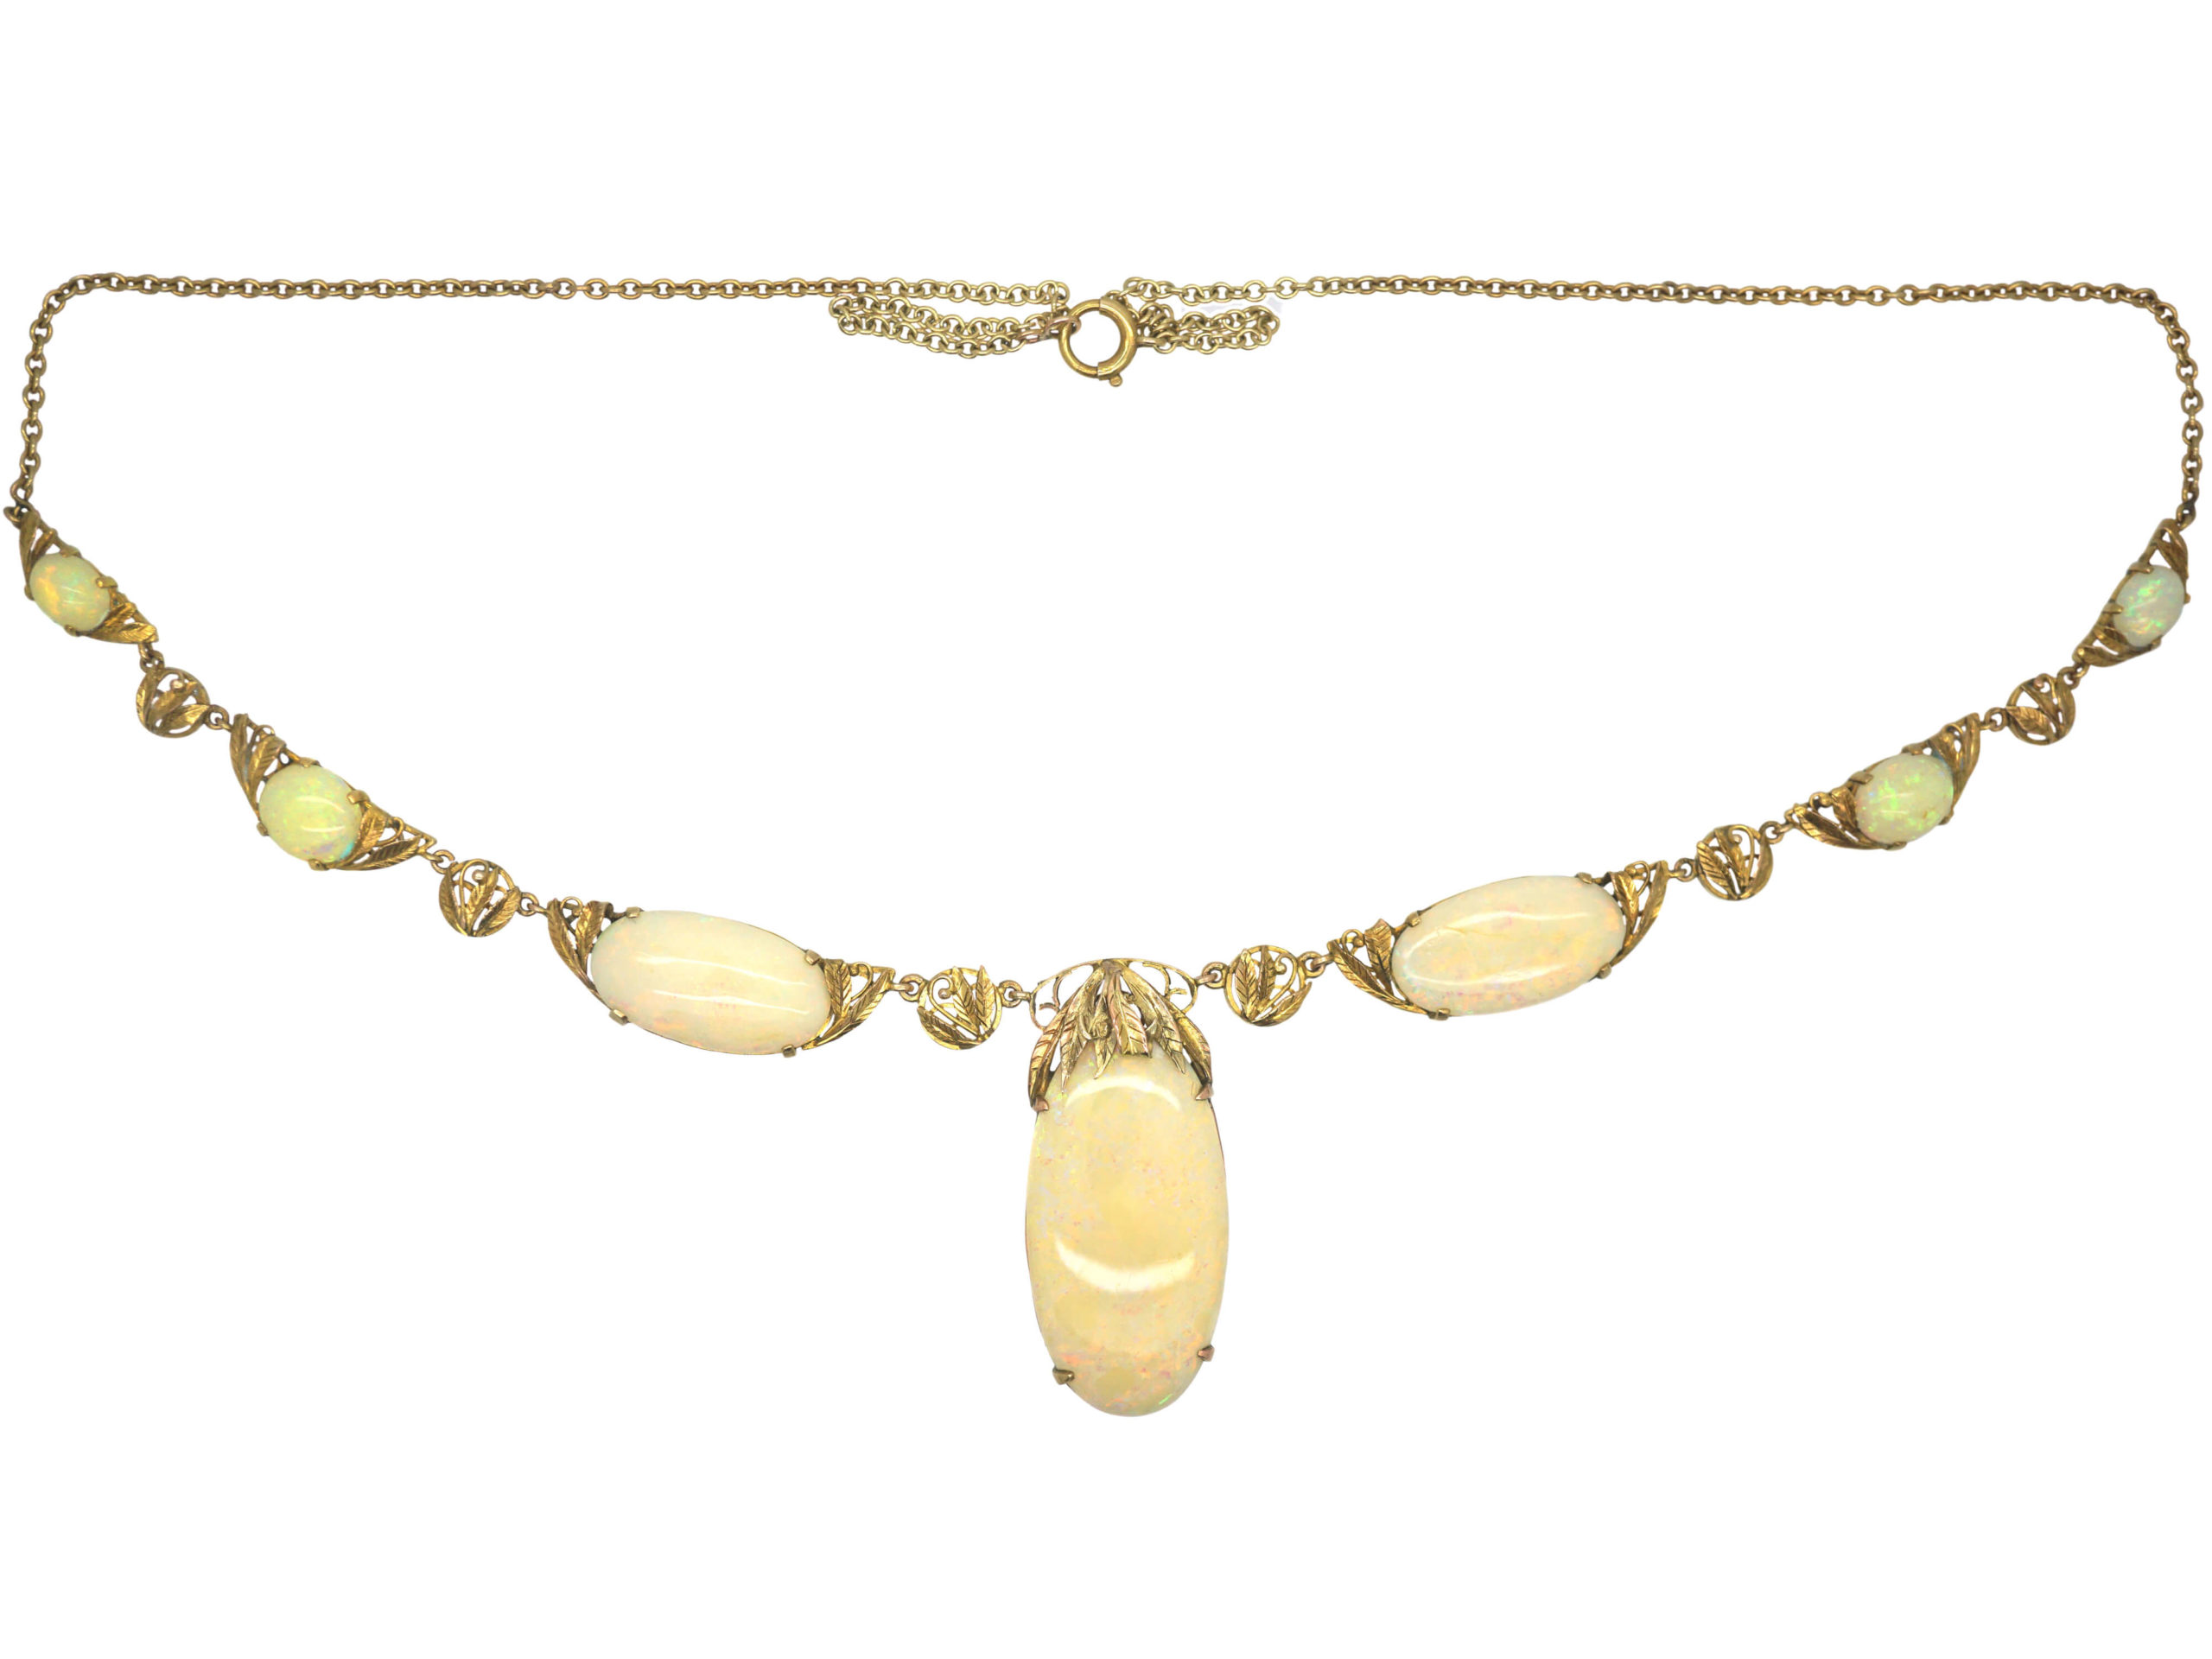 Arts & Crafts 9ct Gold & Opal Necklace